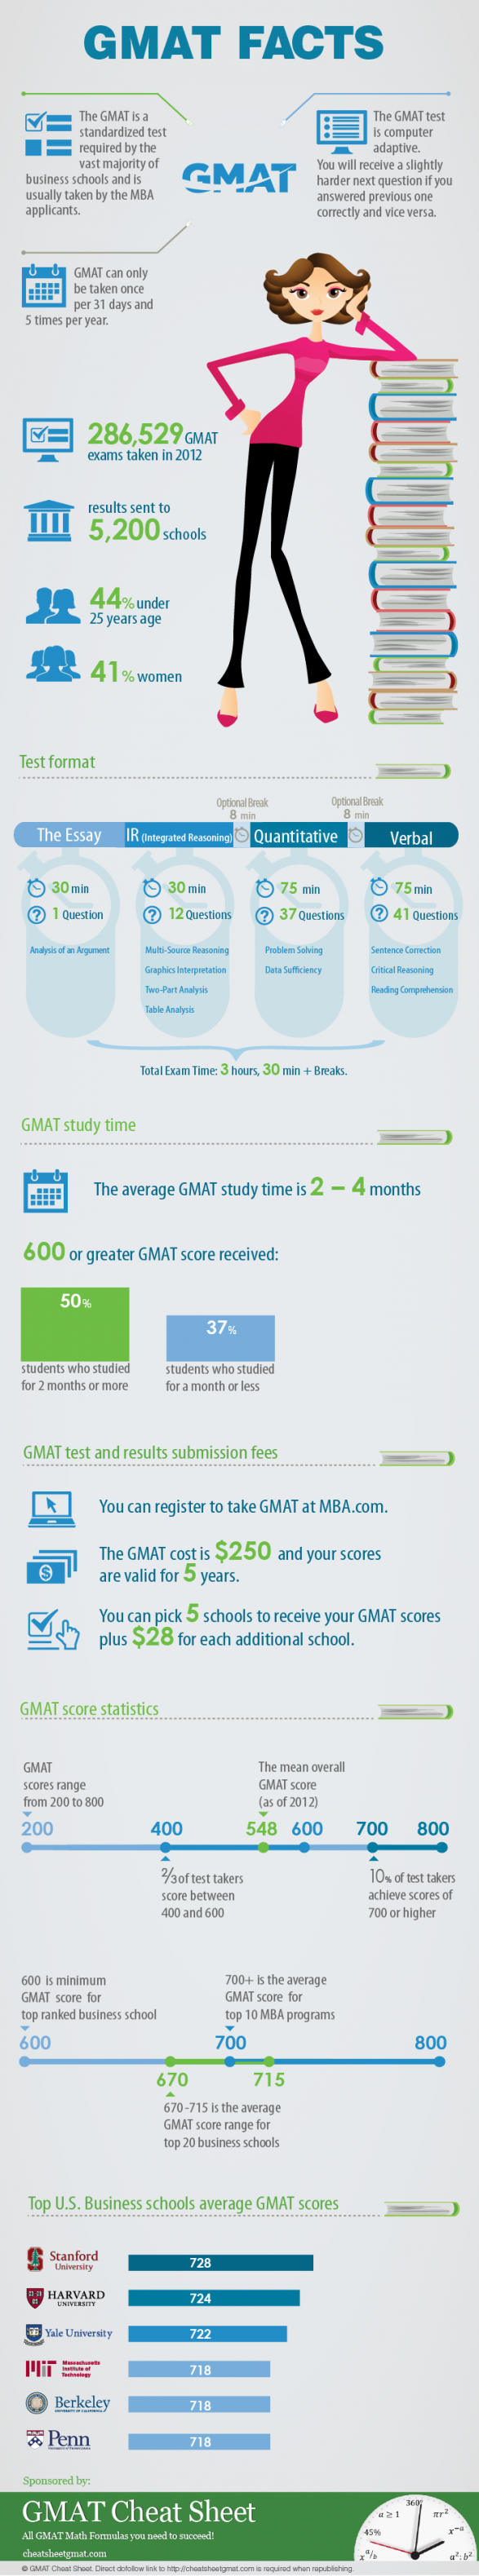 GMAT Test Format And Content [INFOGRAPHIC]